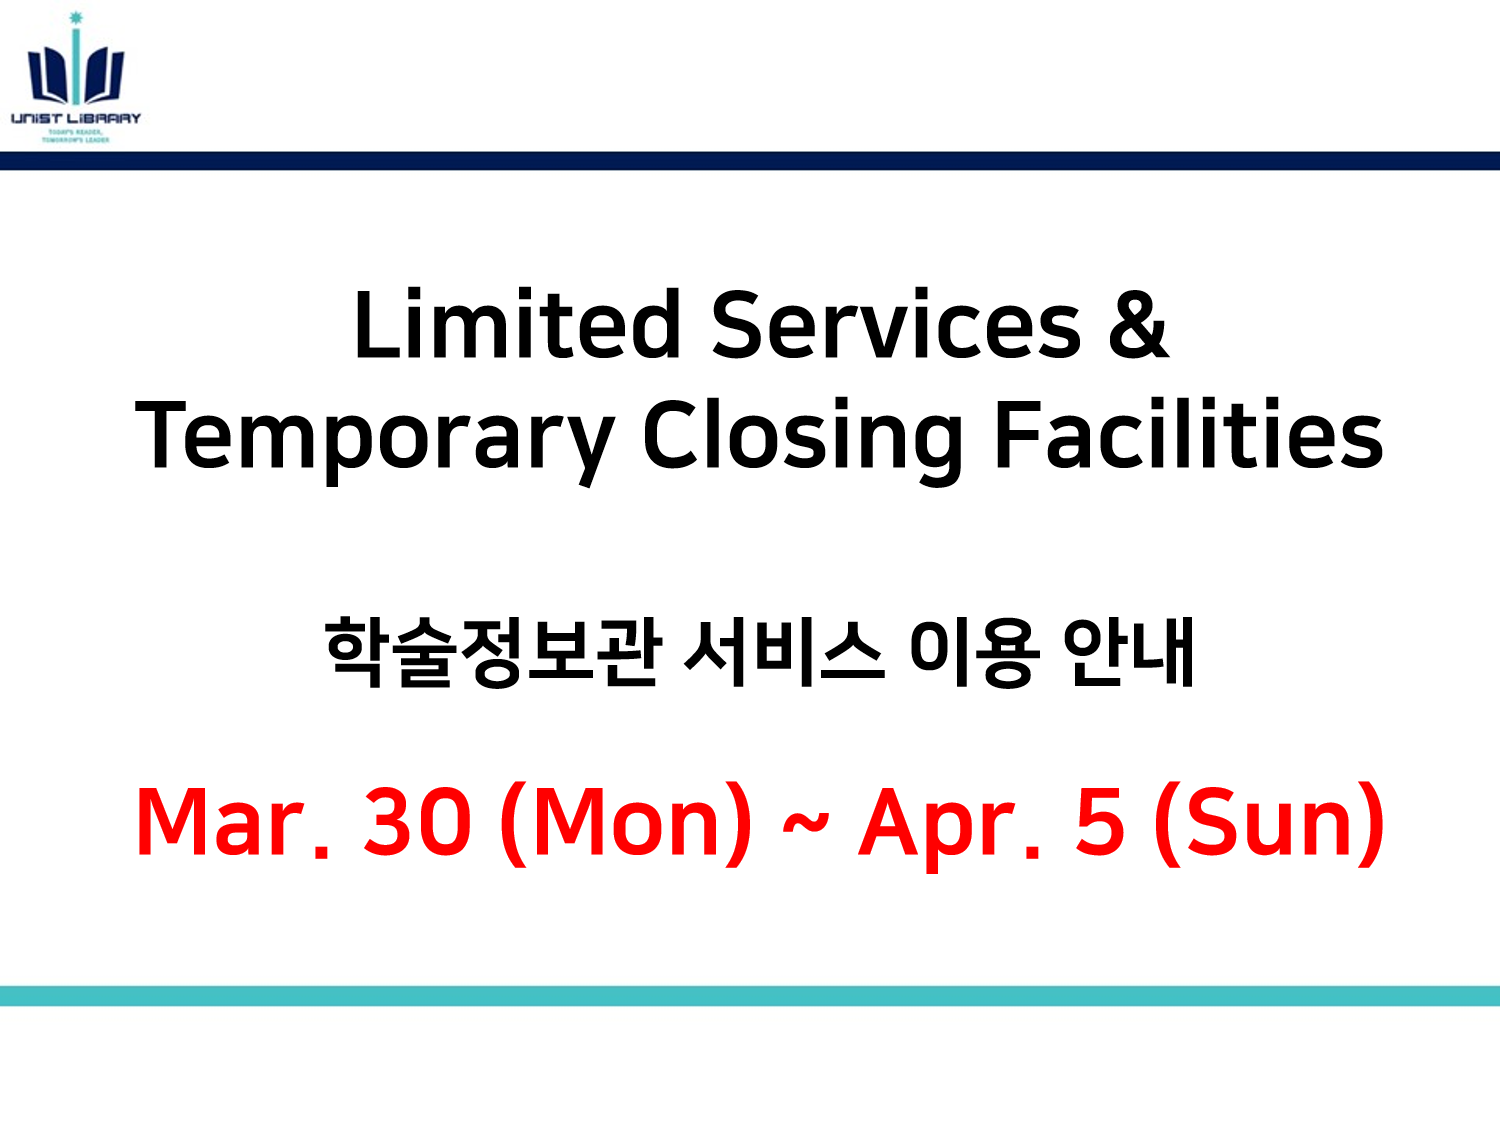 Limited Services & Temporary Closing Facilities (Mar. 30 - Apr. 5)